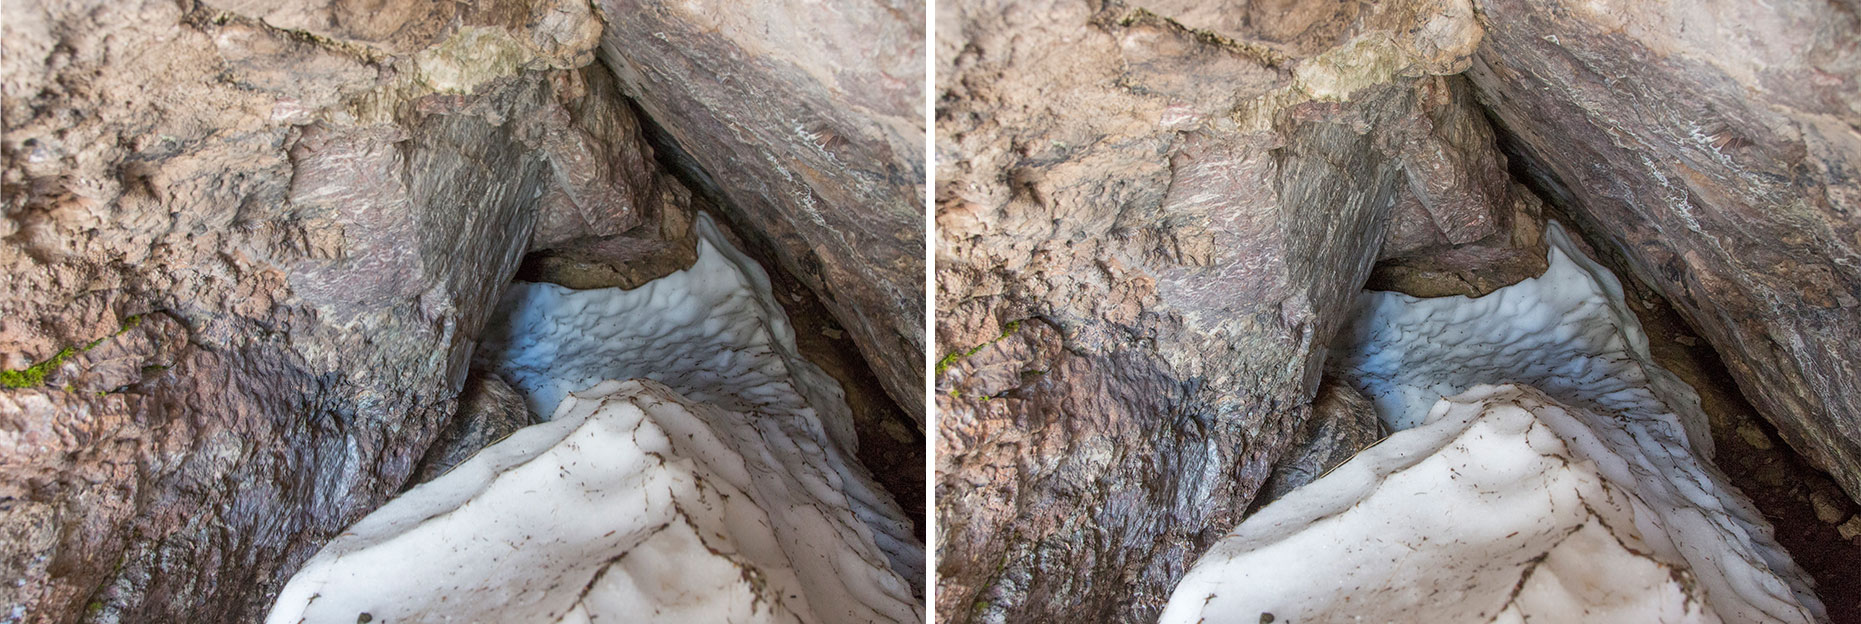 Man Cave In Spanish : Spanish cave of marble mountain